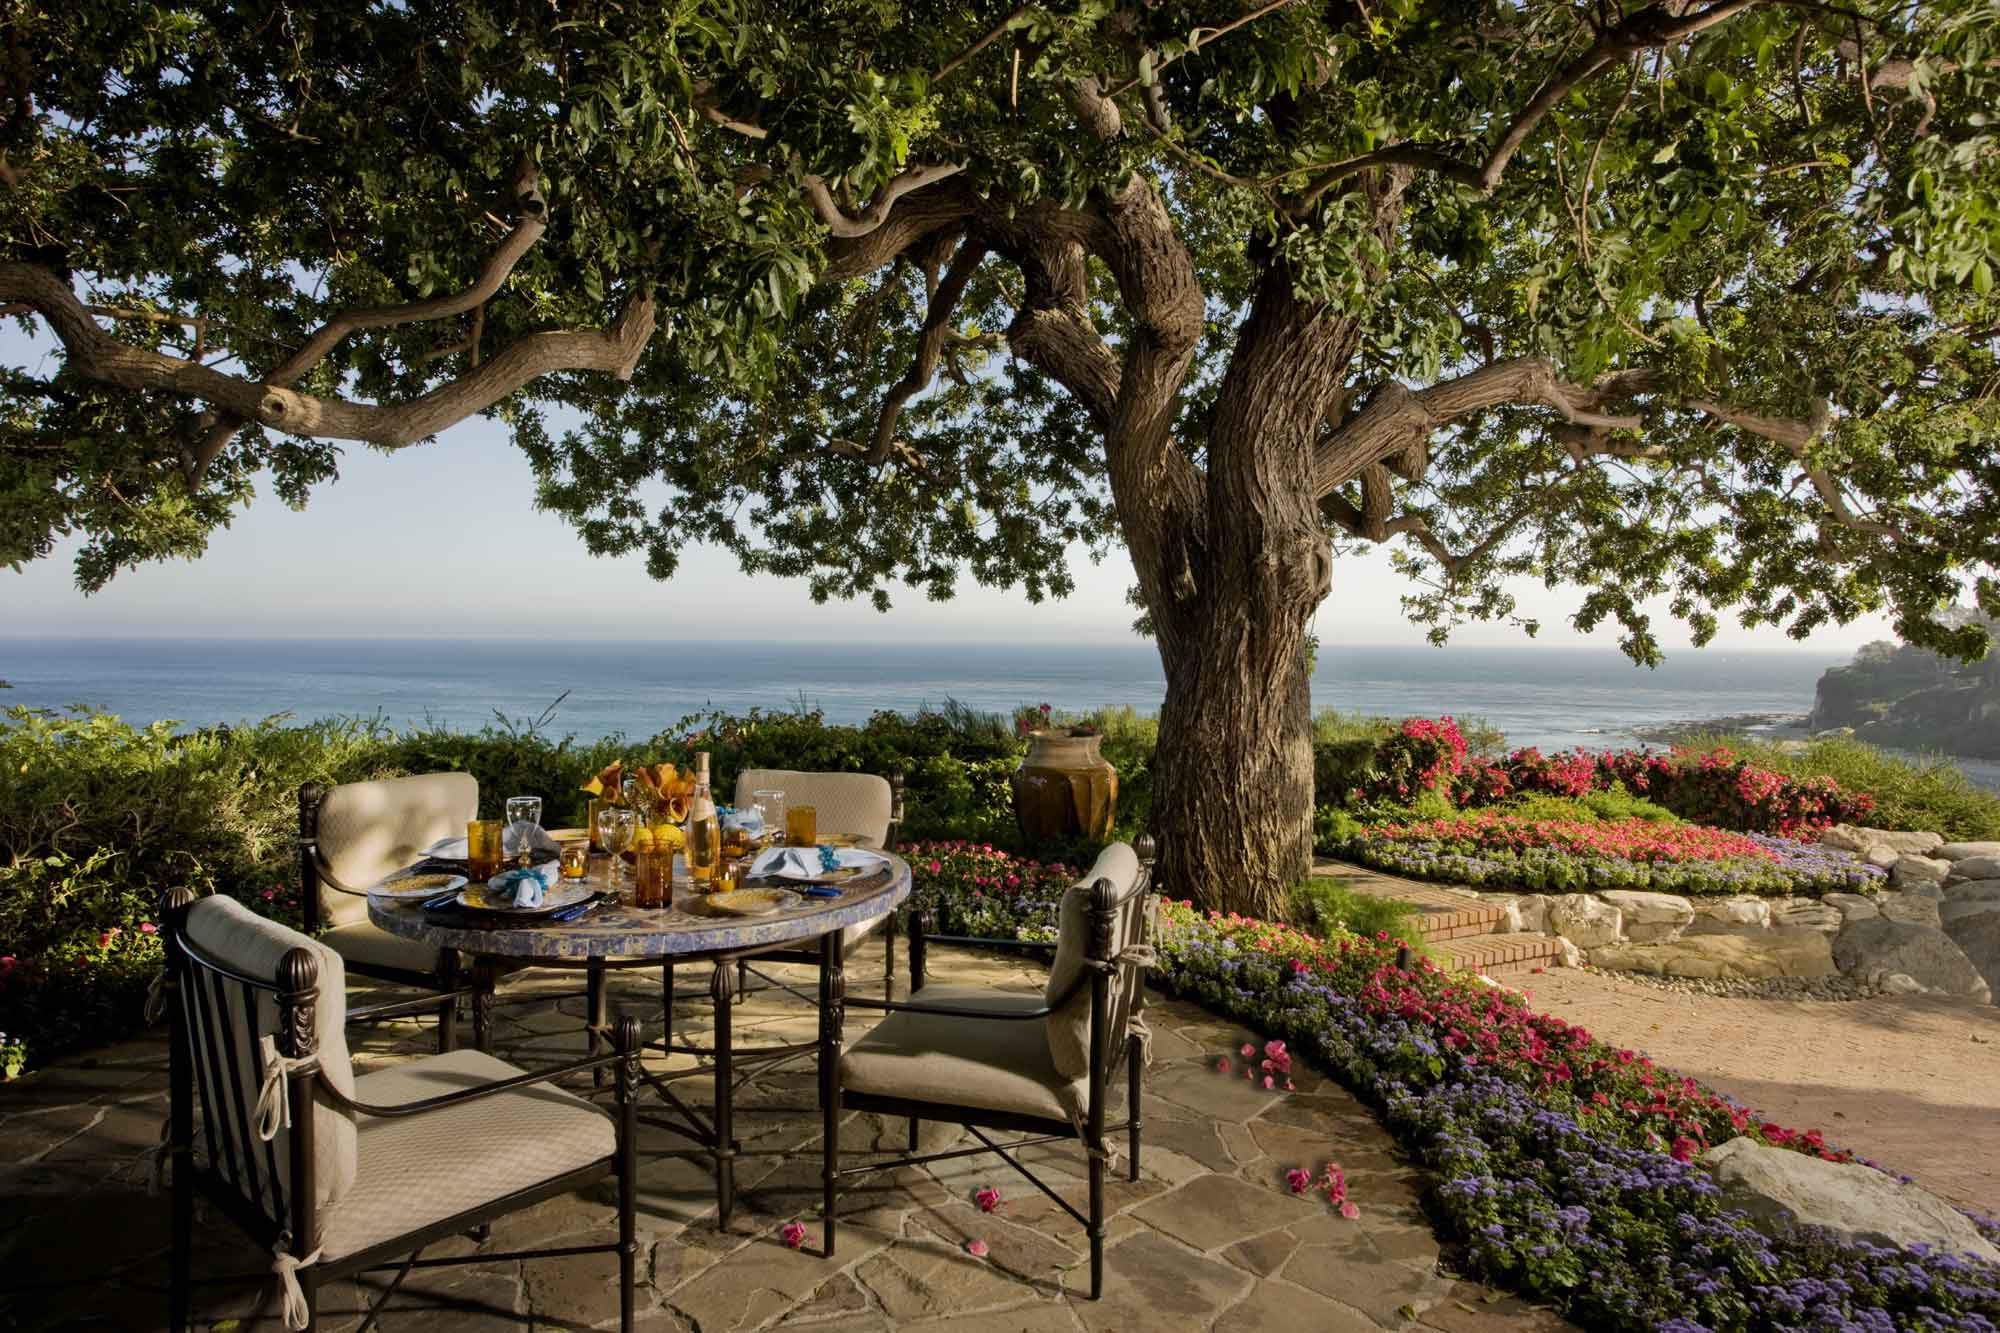 This terraced patio faces iconic Pt. Dume in the distance, and can serve as an open-air breakfast-nook.